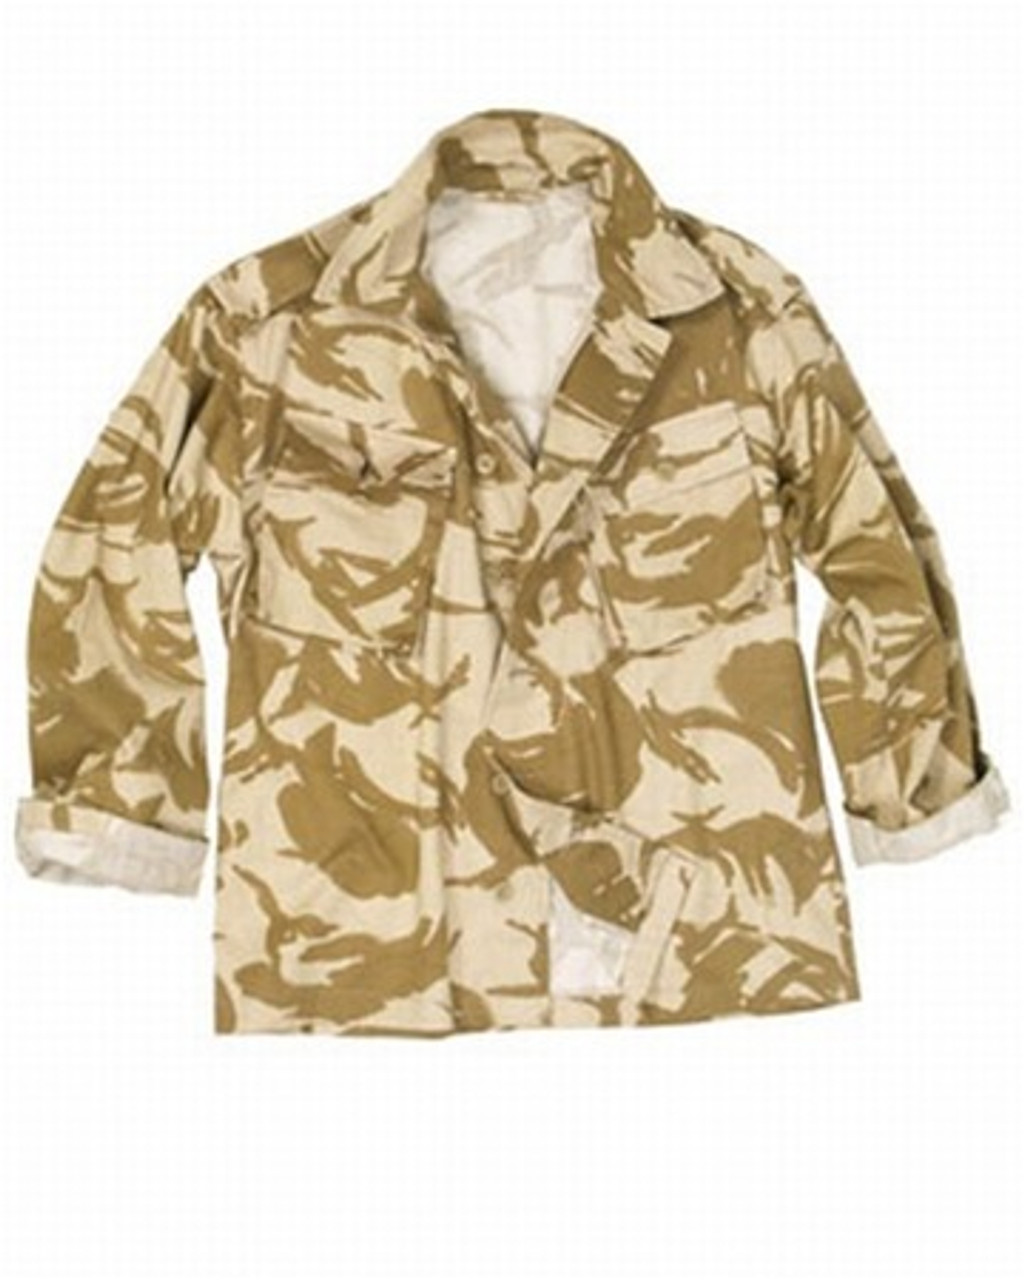 British Desert DPM Camo Field Shirt from Hessen Surplus